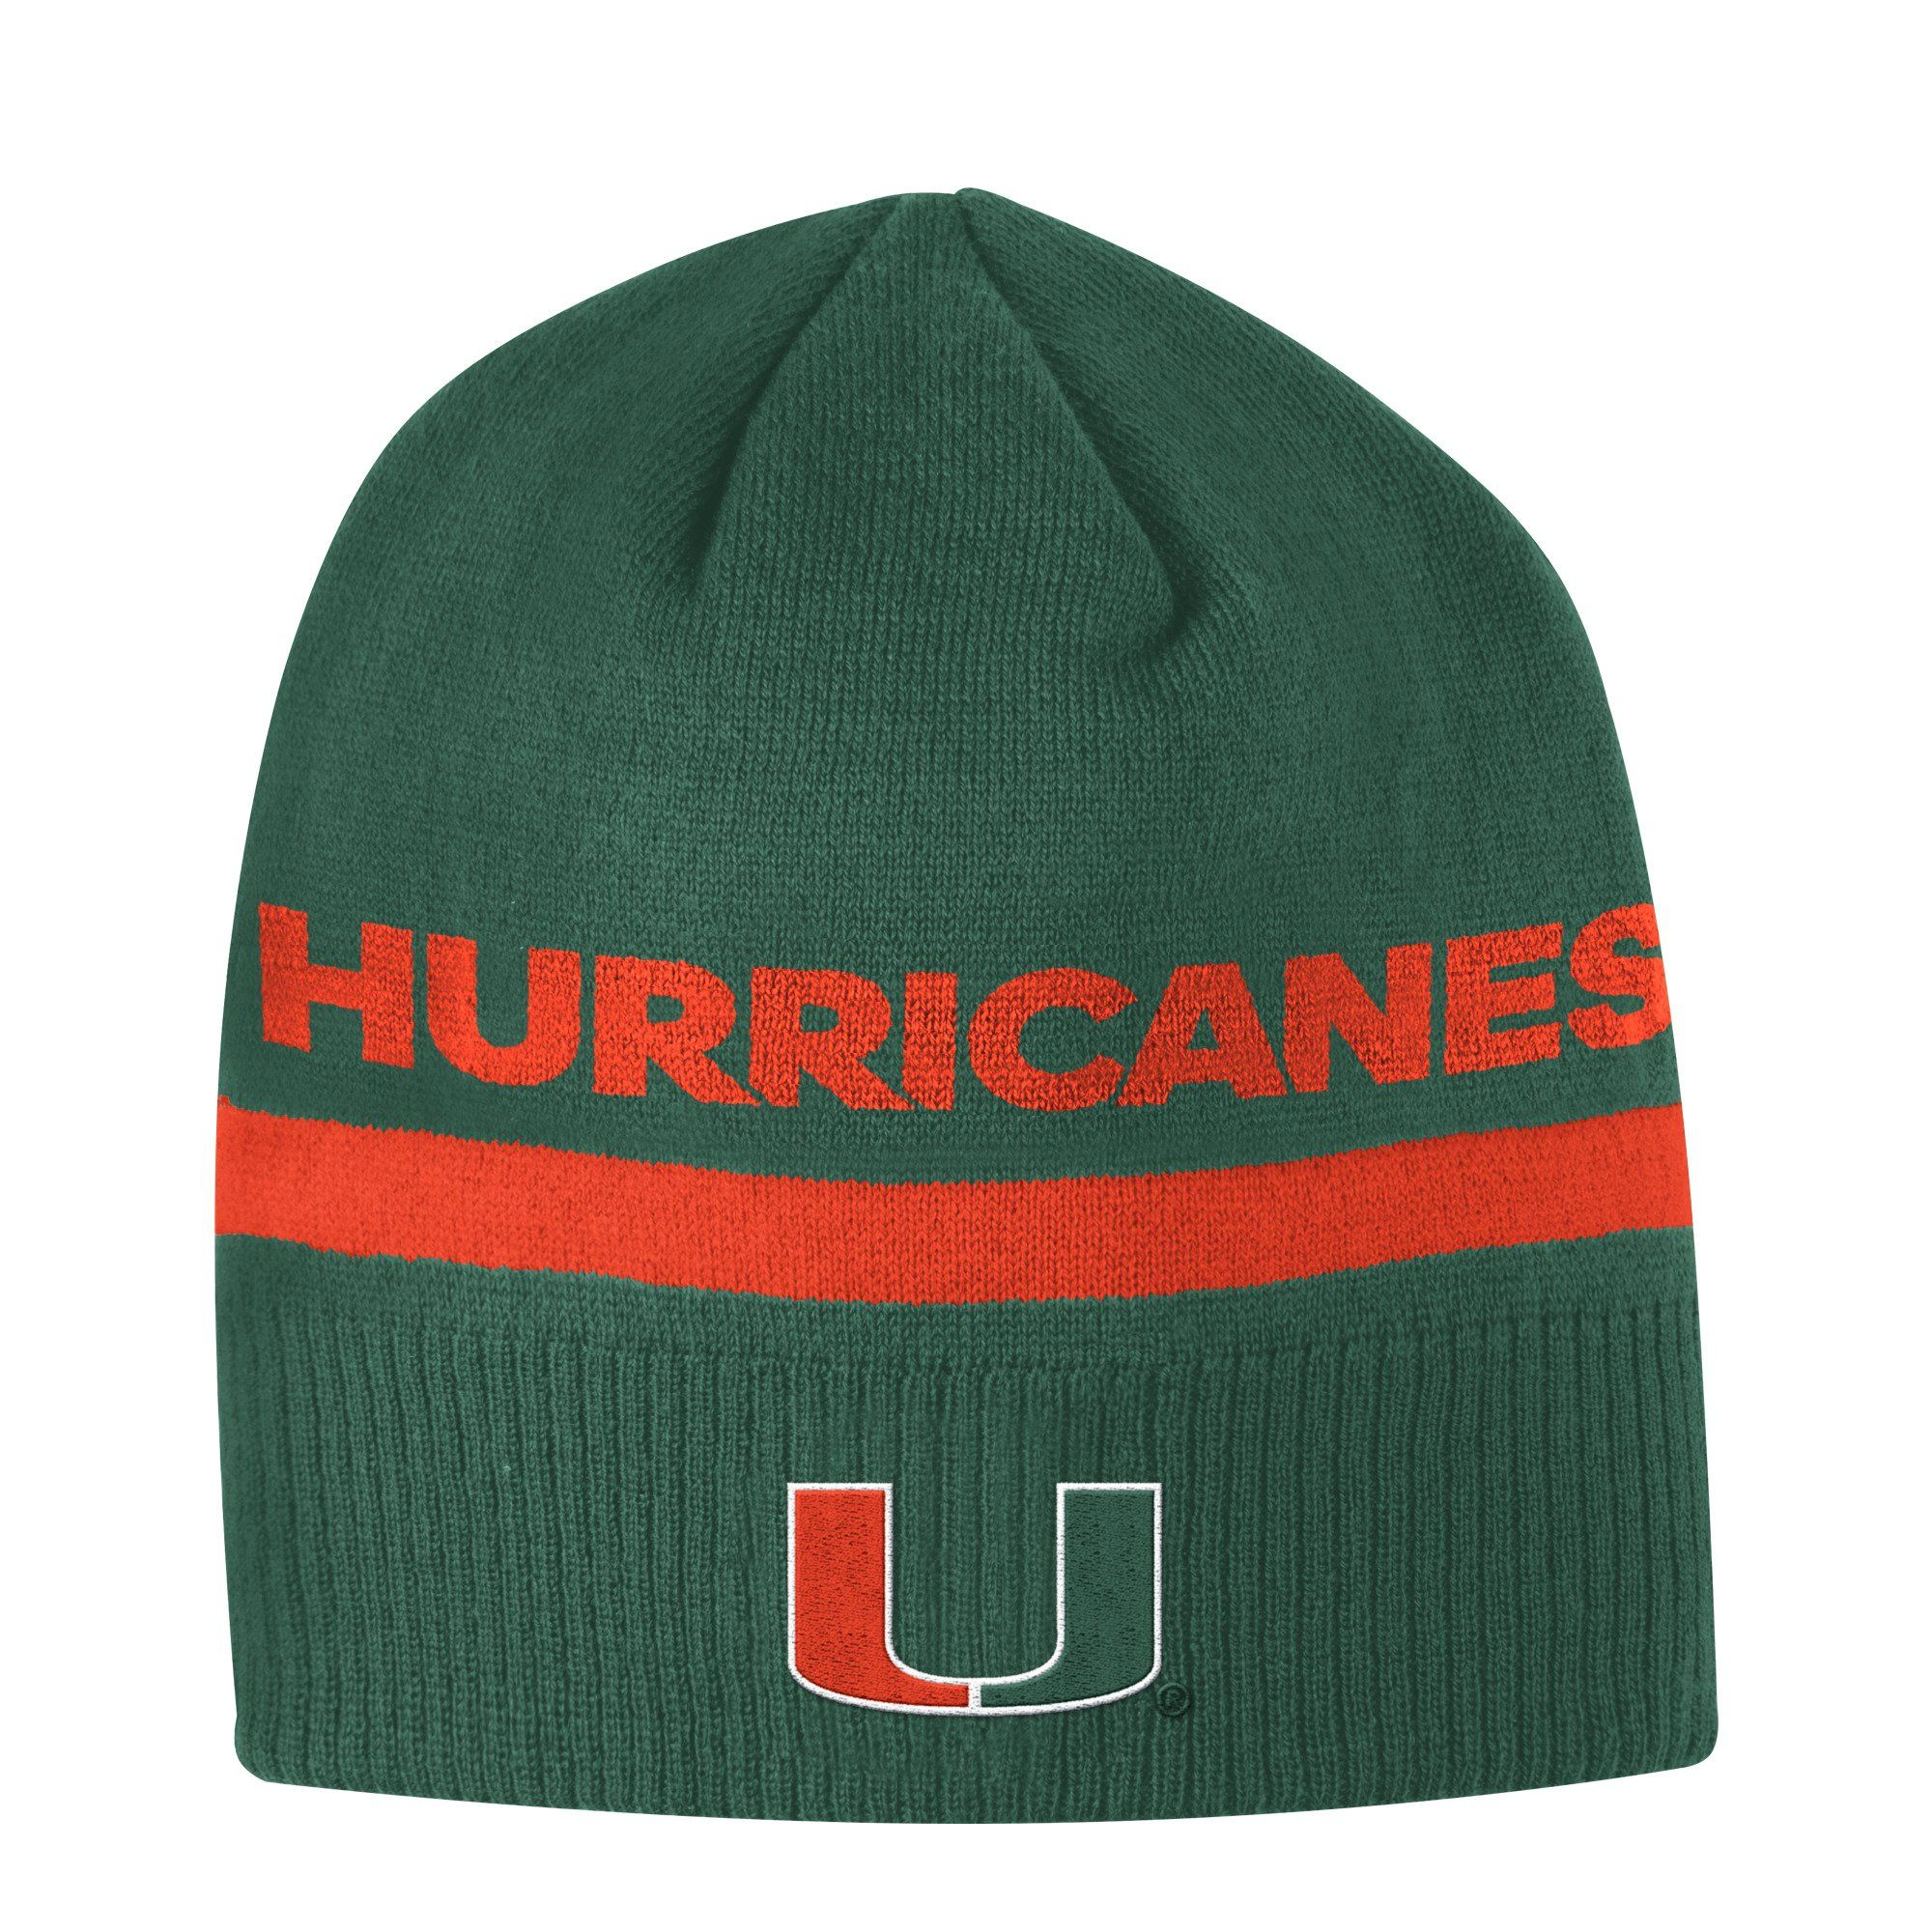 605aed39c9dae Miami Hurricanes adidas 2017 Coaches Adjustable Hat - Green ...